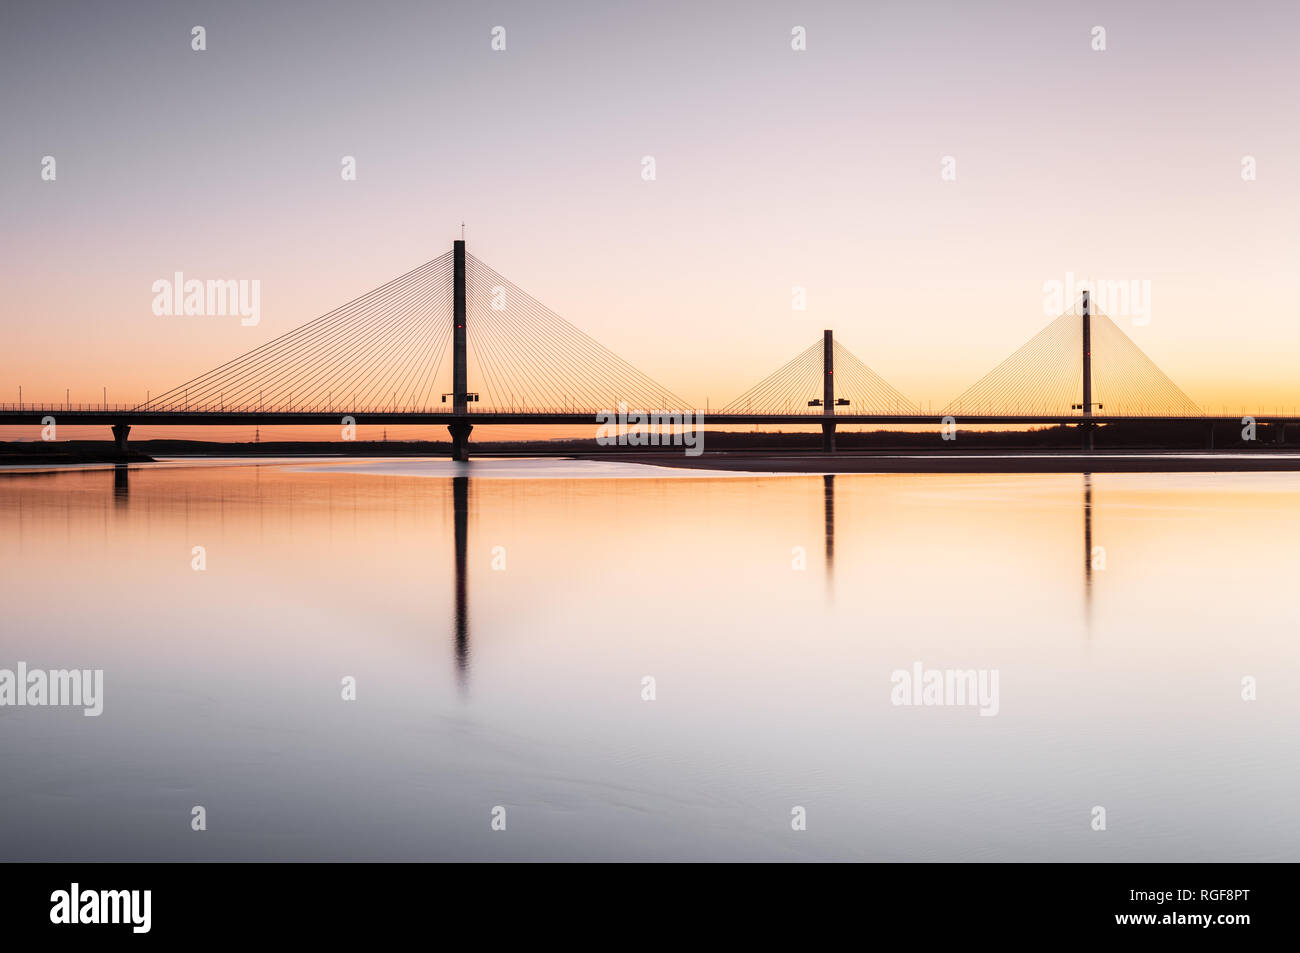 Sunrise view of the Mersey Gateway Bridge over the River Mersey that connects Runcorn and Widnes in Cheshire - Stock Image